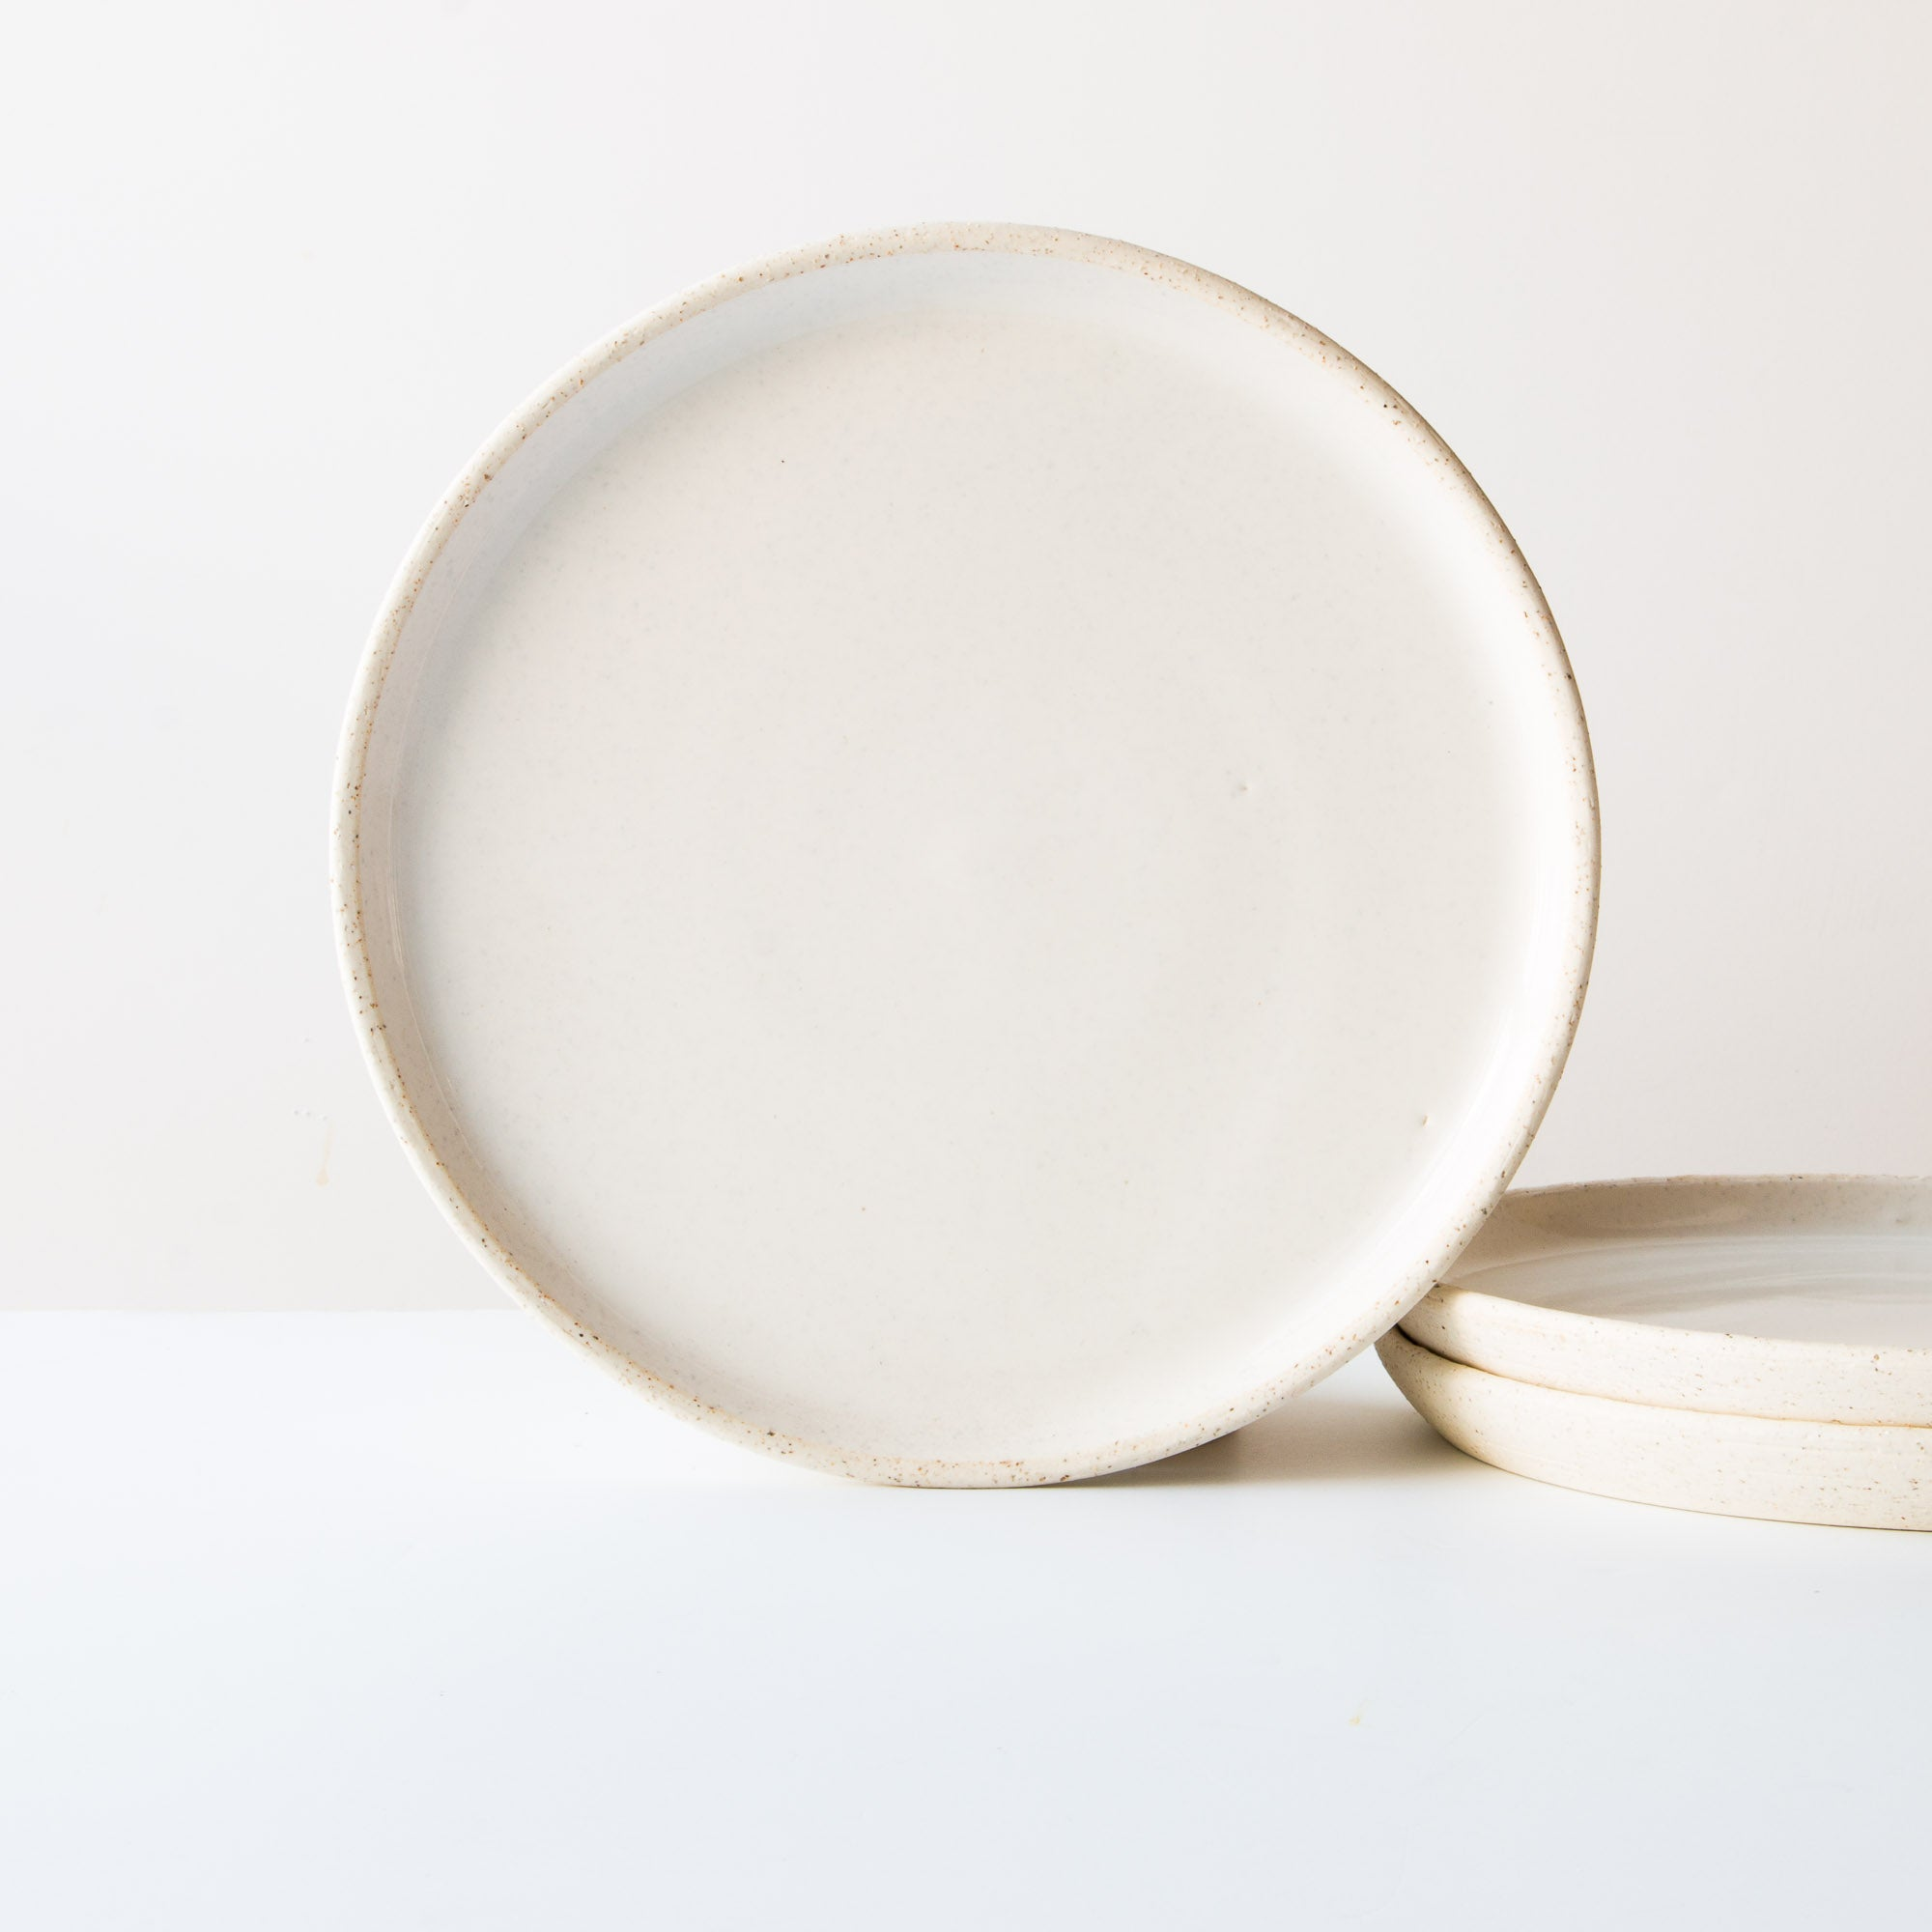 Oatmeal Clay - Soft White Glaze - Large Ceramic Dinner Plates - Handmade in Quebec, Canada